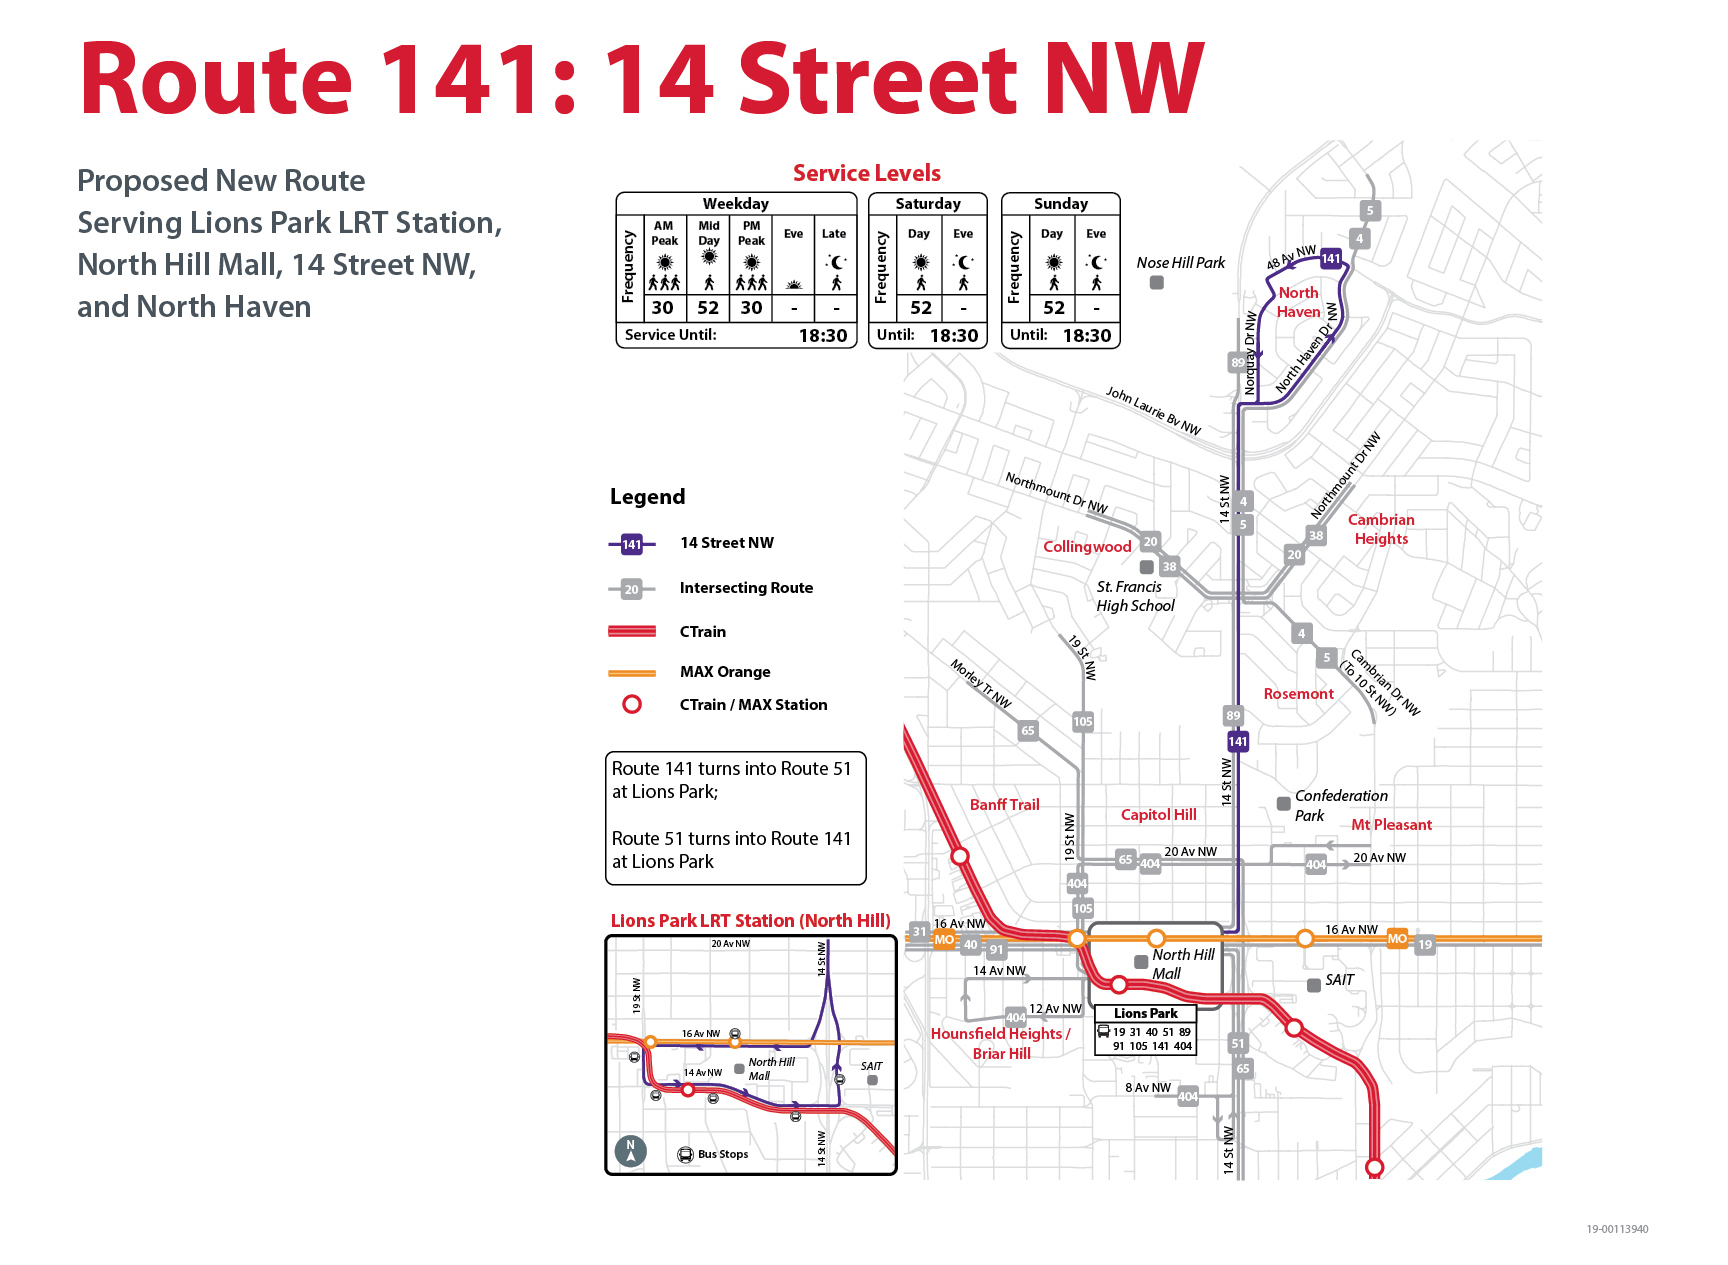 Proposed Changes to Route 141